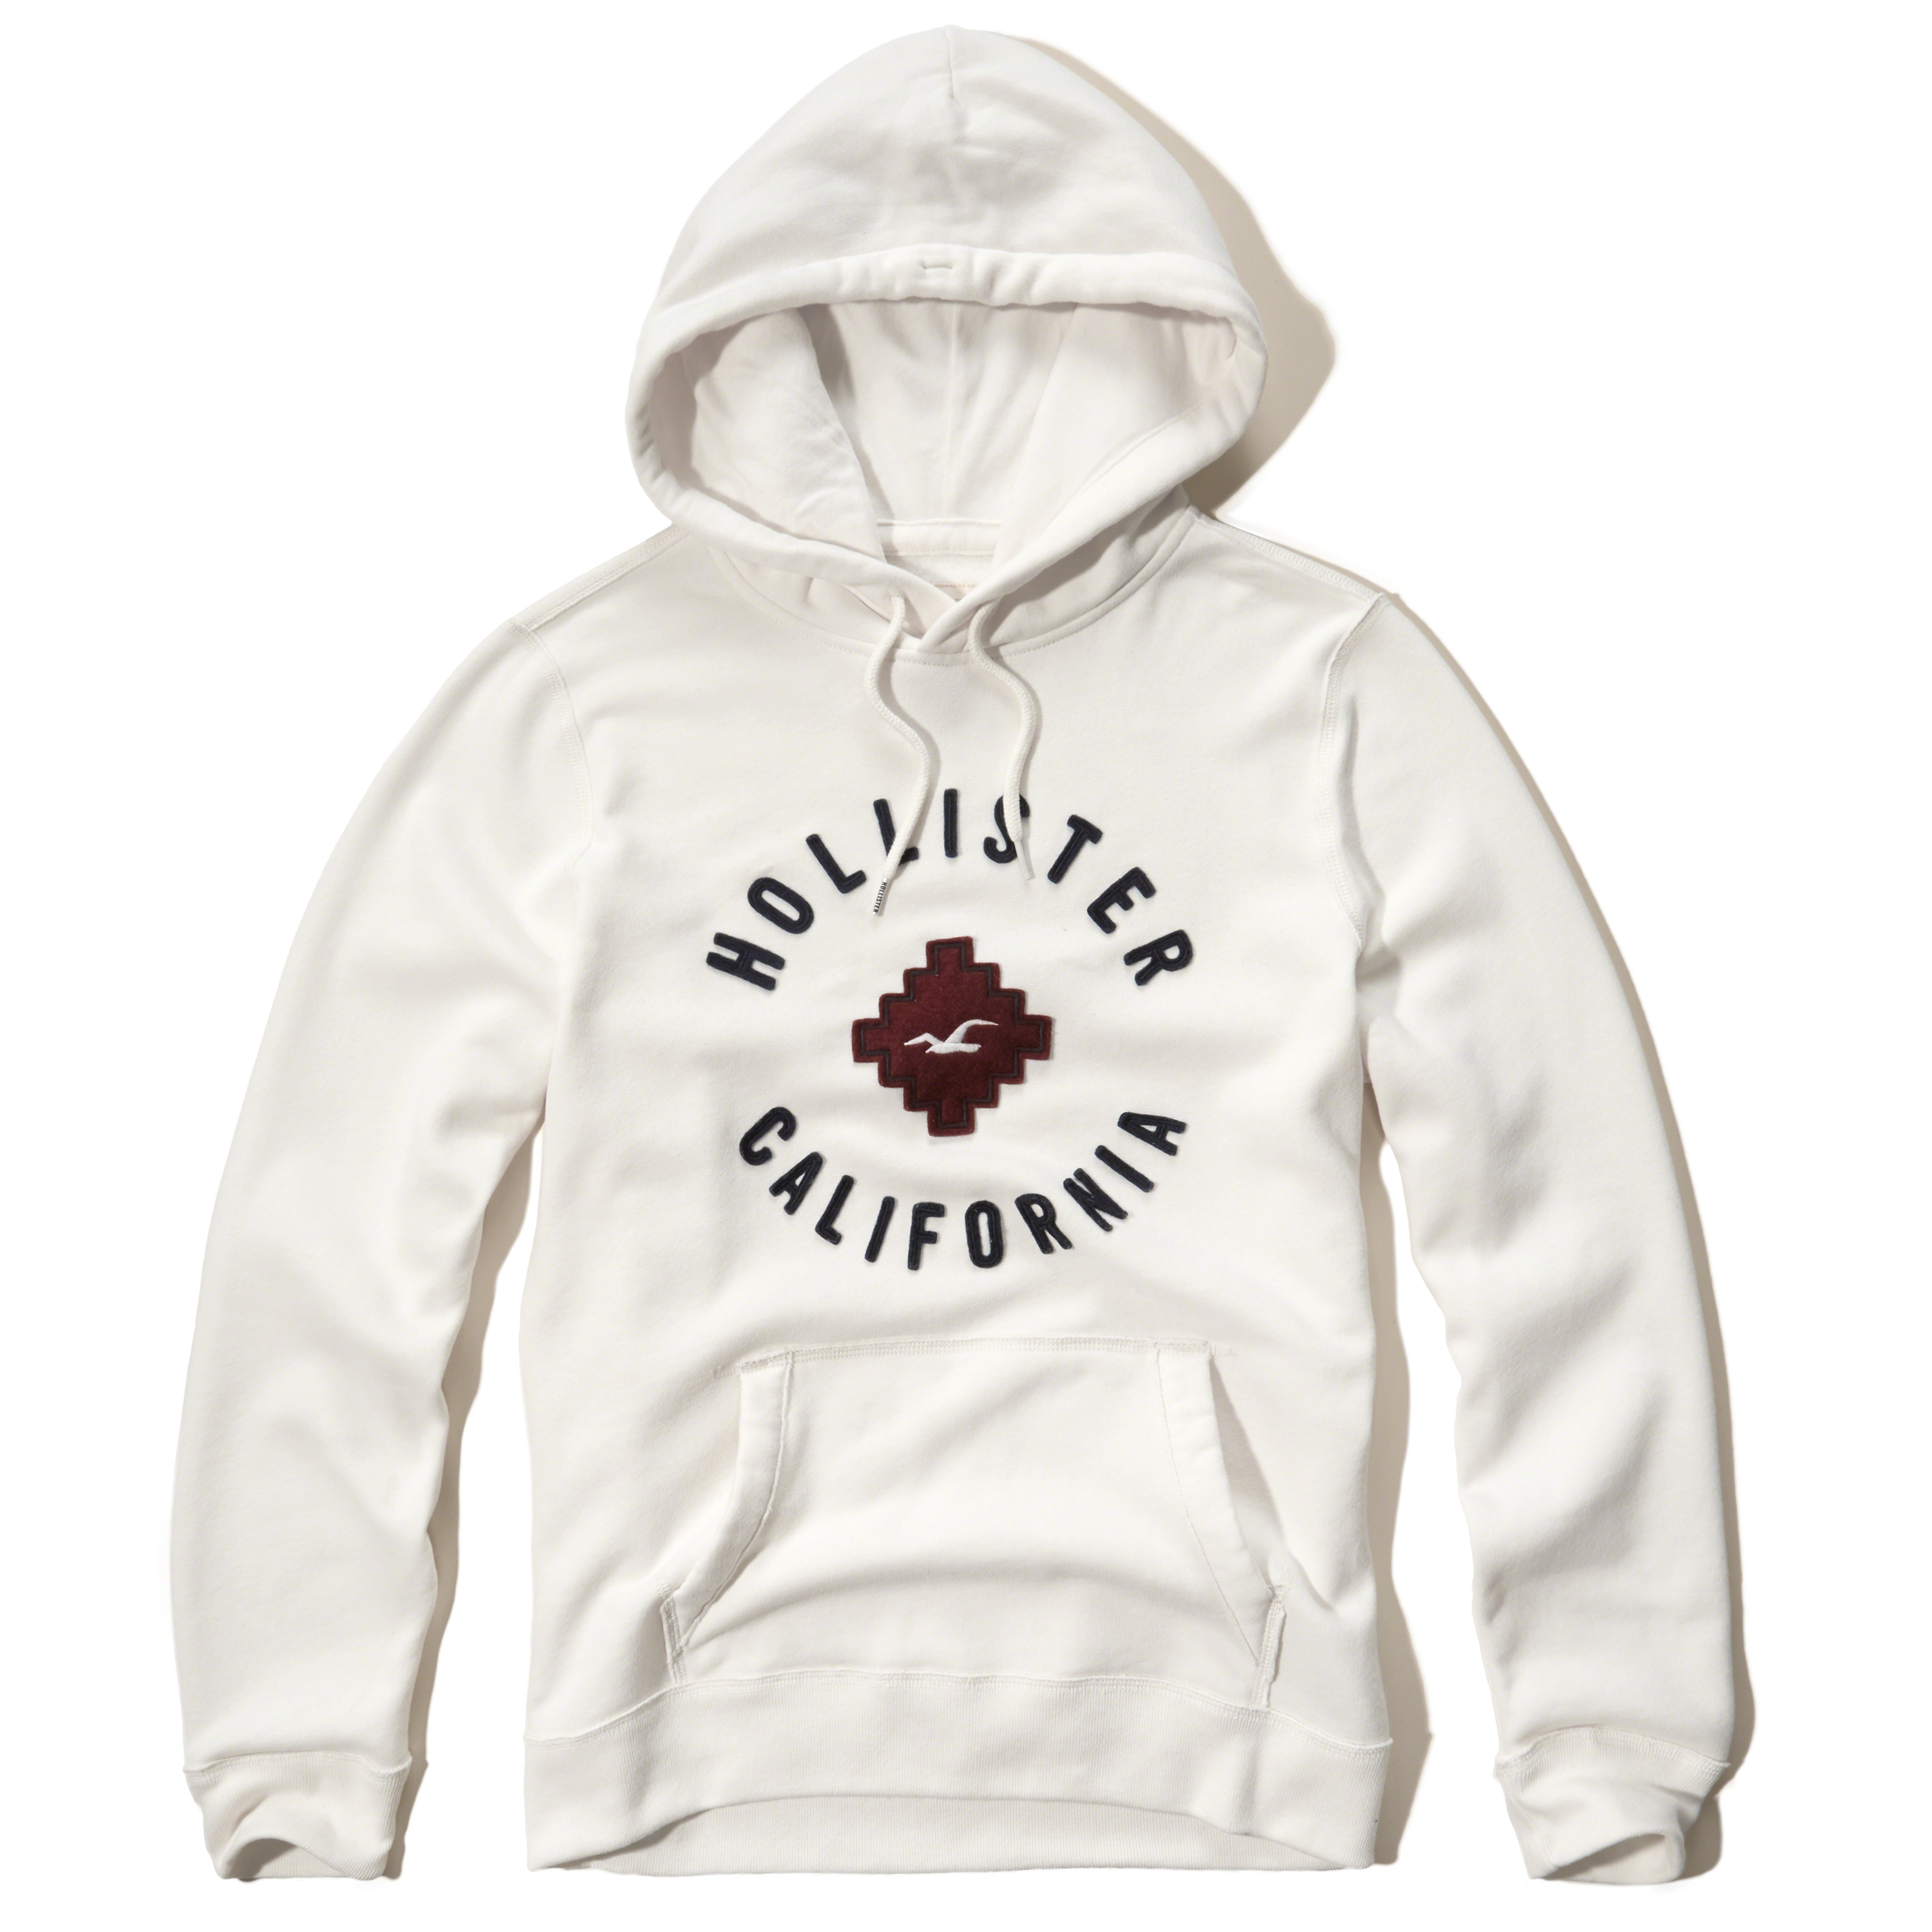 Hollister Oberbekleidung Returns Exchanges Hollister Pullover Hollister Hoodies Hollister Jeans: Hollister Logo Graphic Hoodie In White For Men